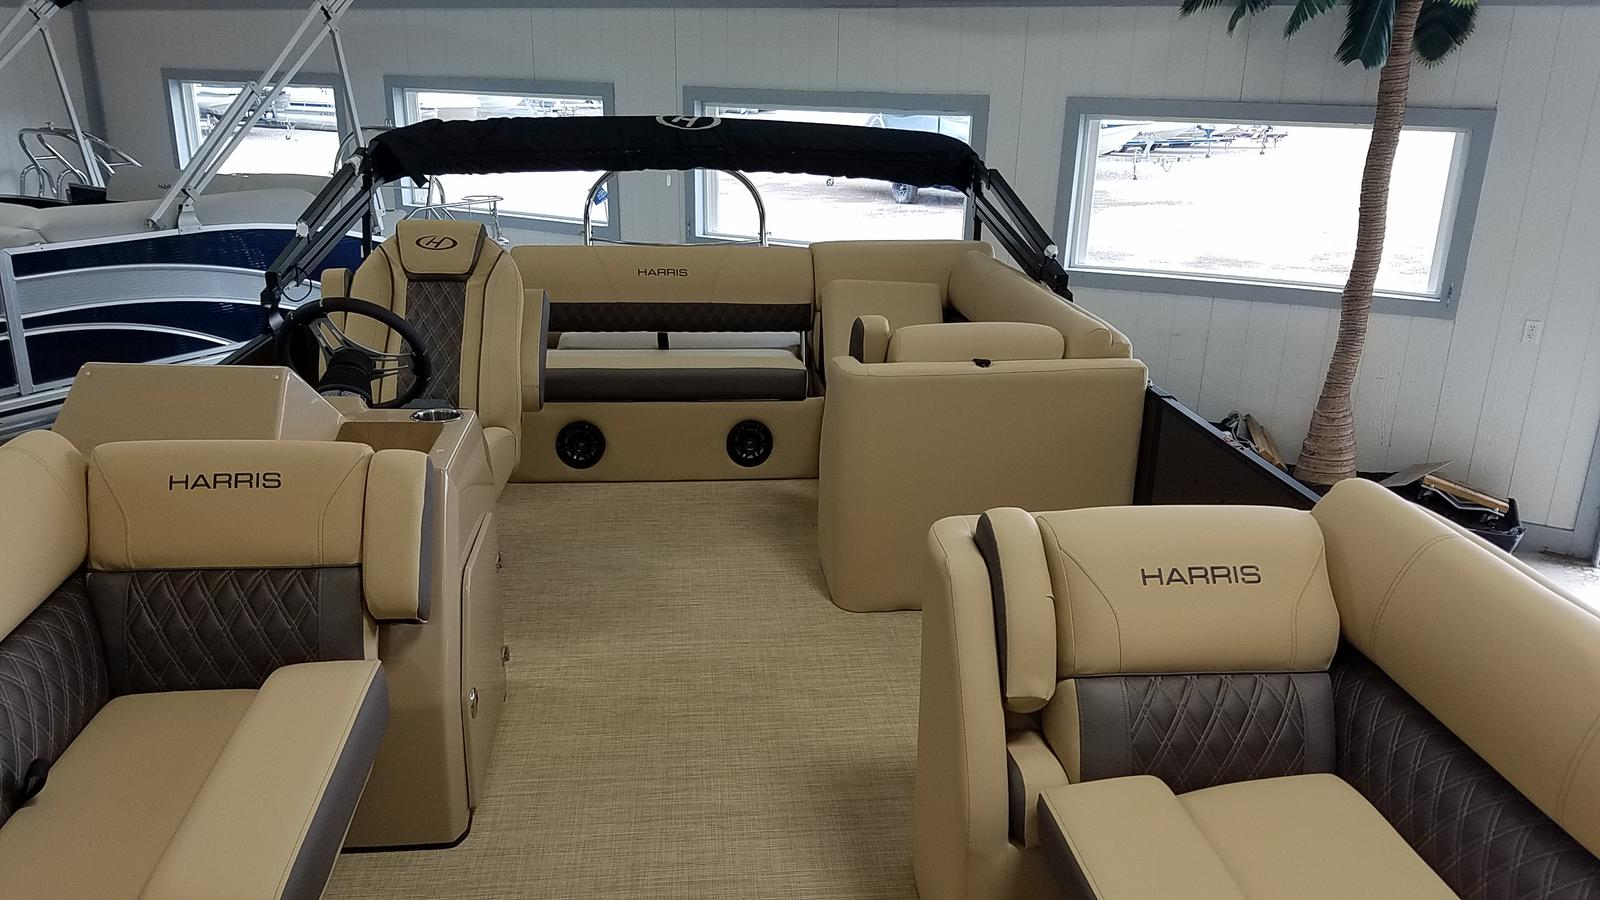 2021 Harris boat for sale, model of the boat is Sunliner 250 & Image # 2 of 17